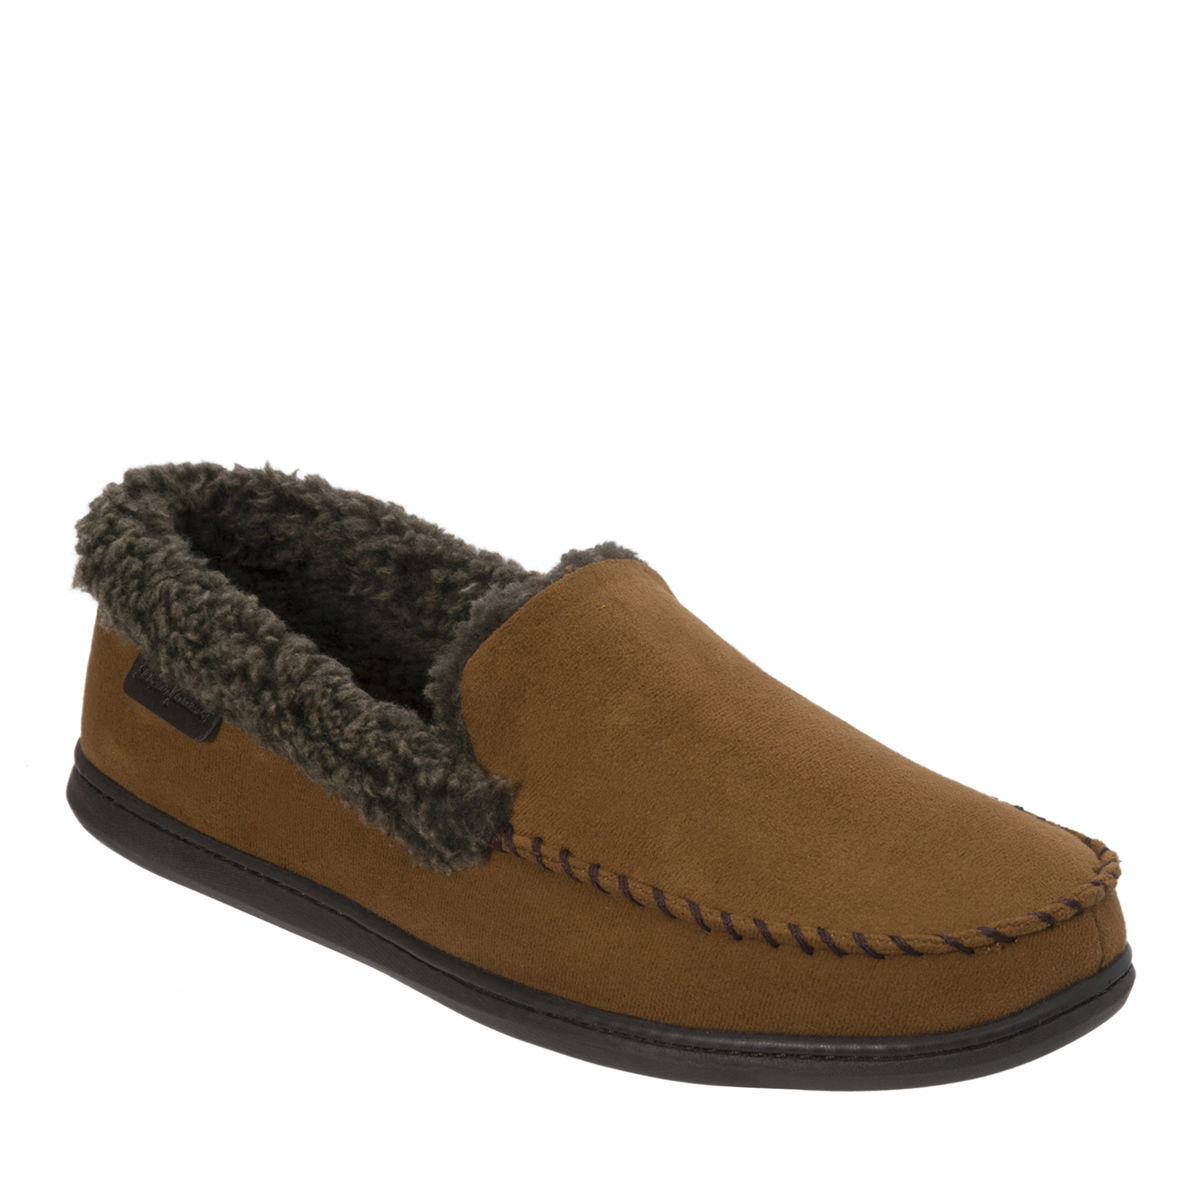 99673a03ce8 Men s Dearfoam Microsuede Moc with Whipstitch and Mem Foam - The ...